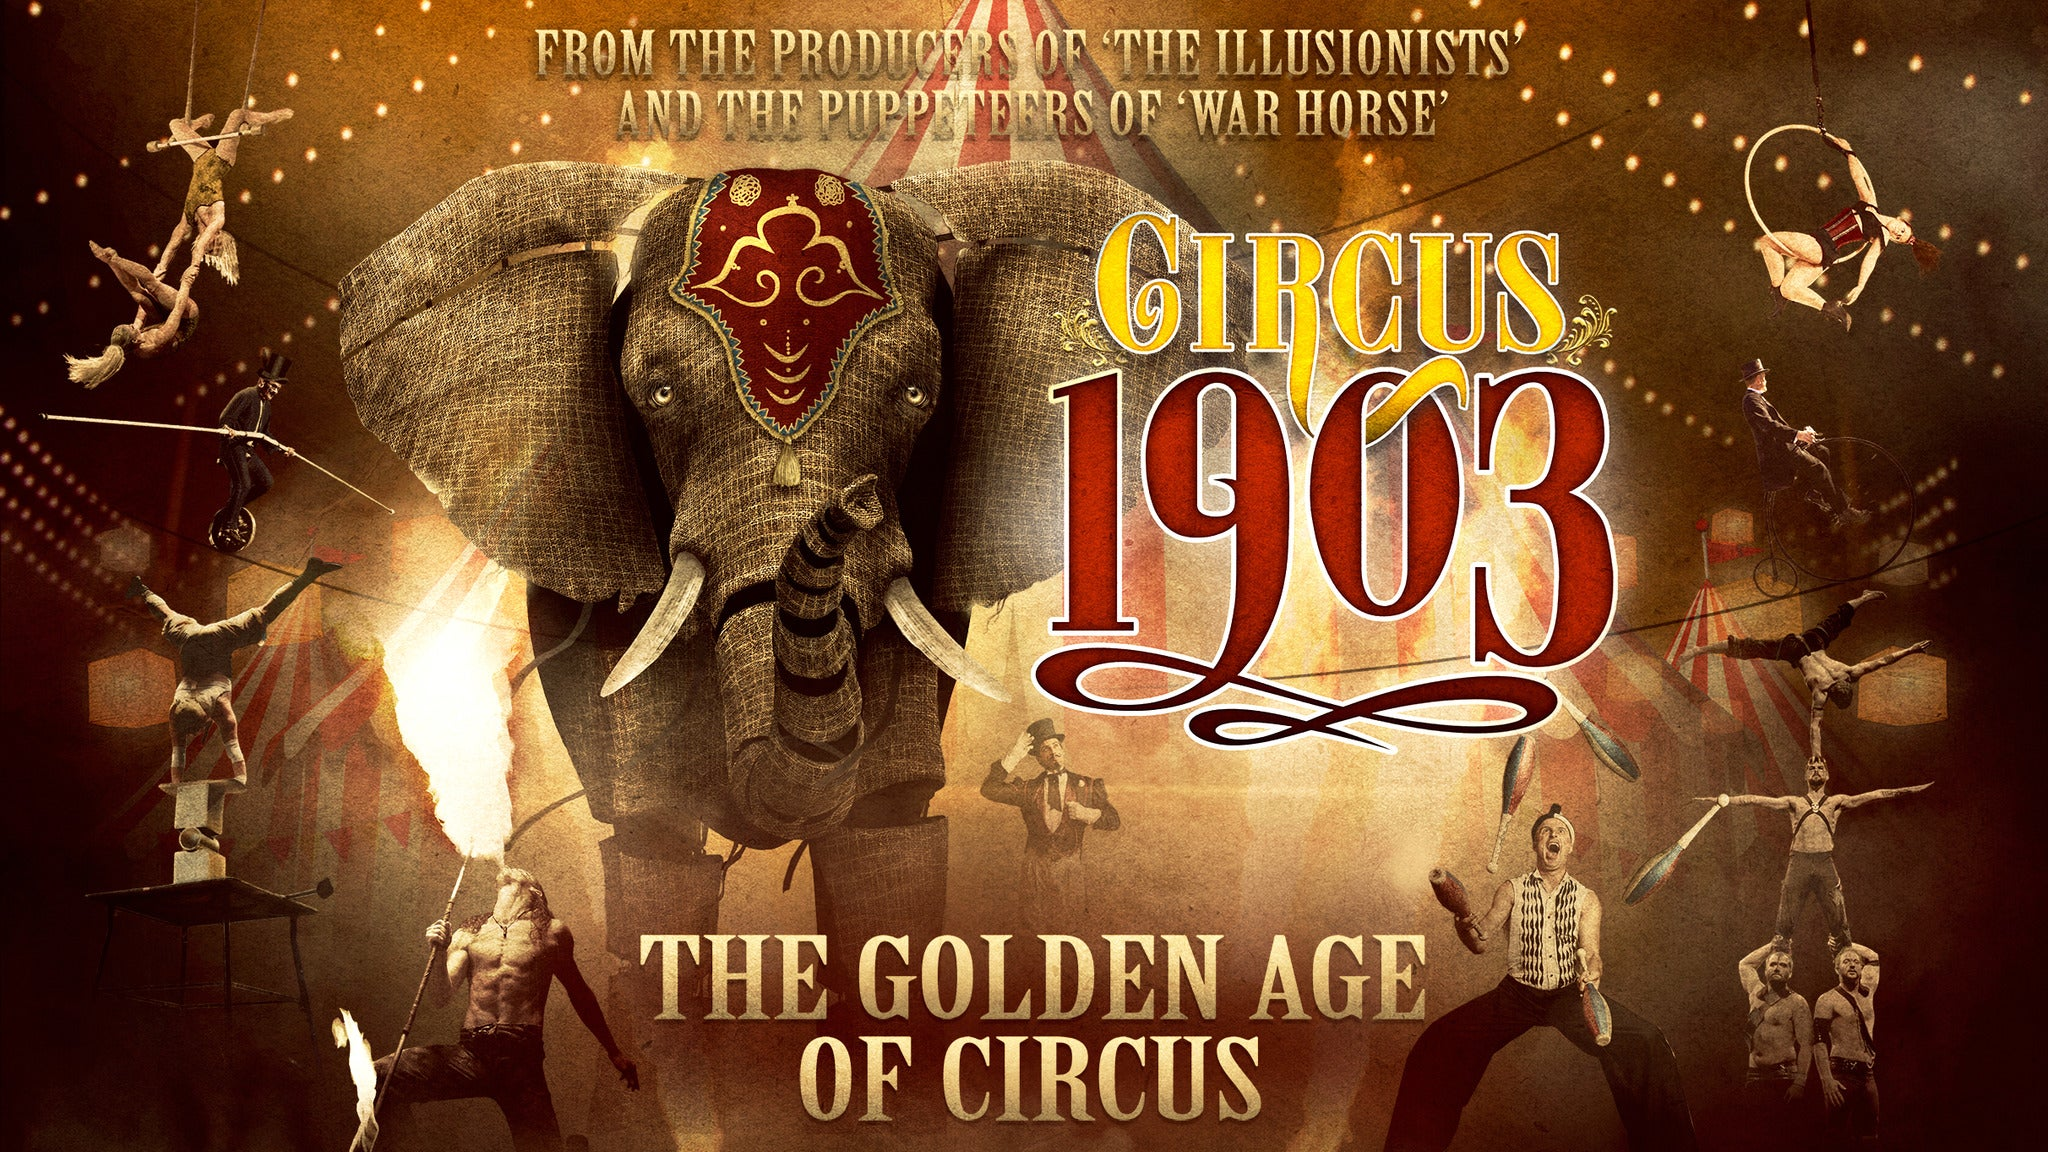 CIRCUS 1903 - The Golden Age of Circus (Chicago)